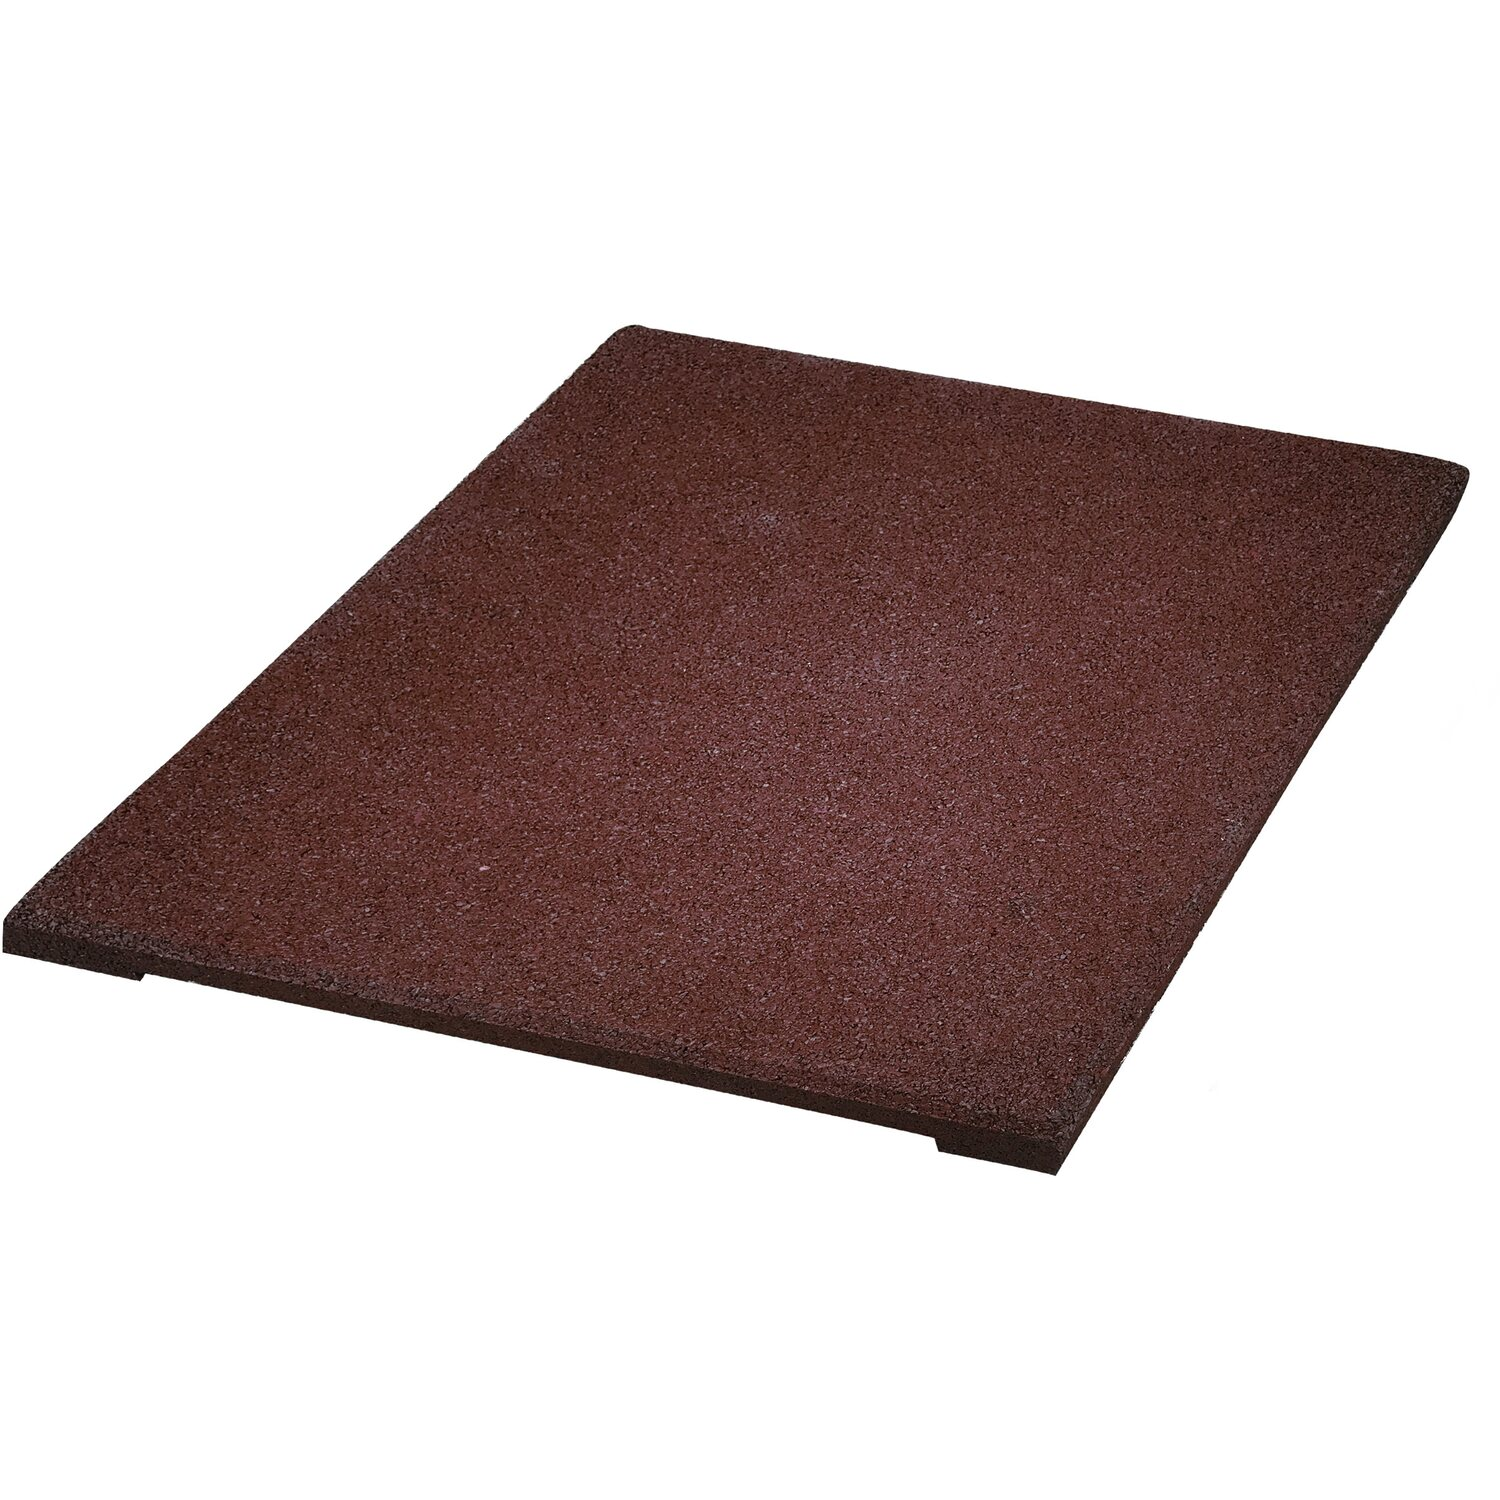 Pavimento Per Gazebo Kit.Piastrella Rubbertile In Gomma Antiurto 40 X 40 Cm